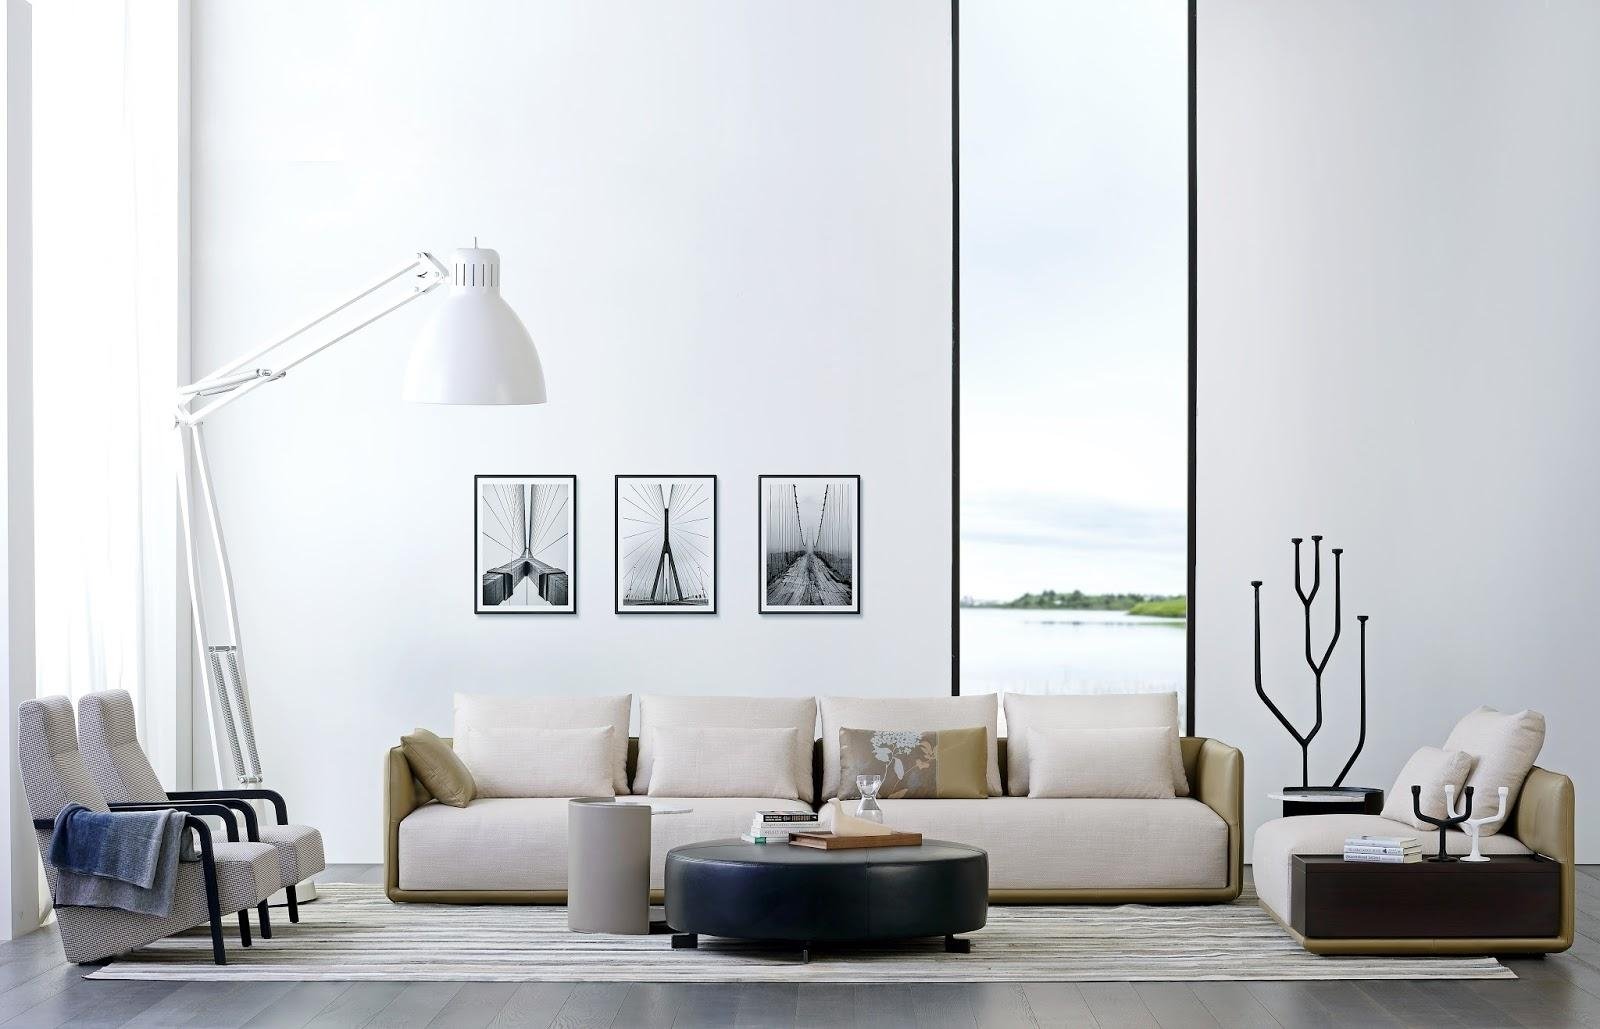 Camerich Contemporary Furniture – The White Approach Inside Camerich Sofas (Image 4 of 19)